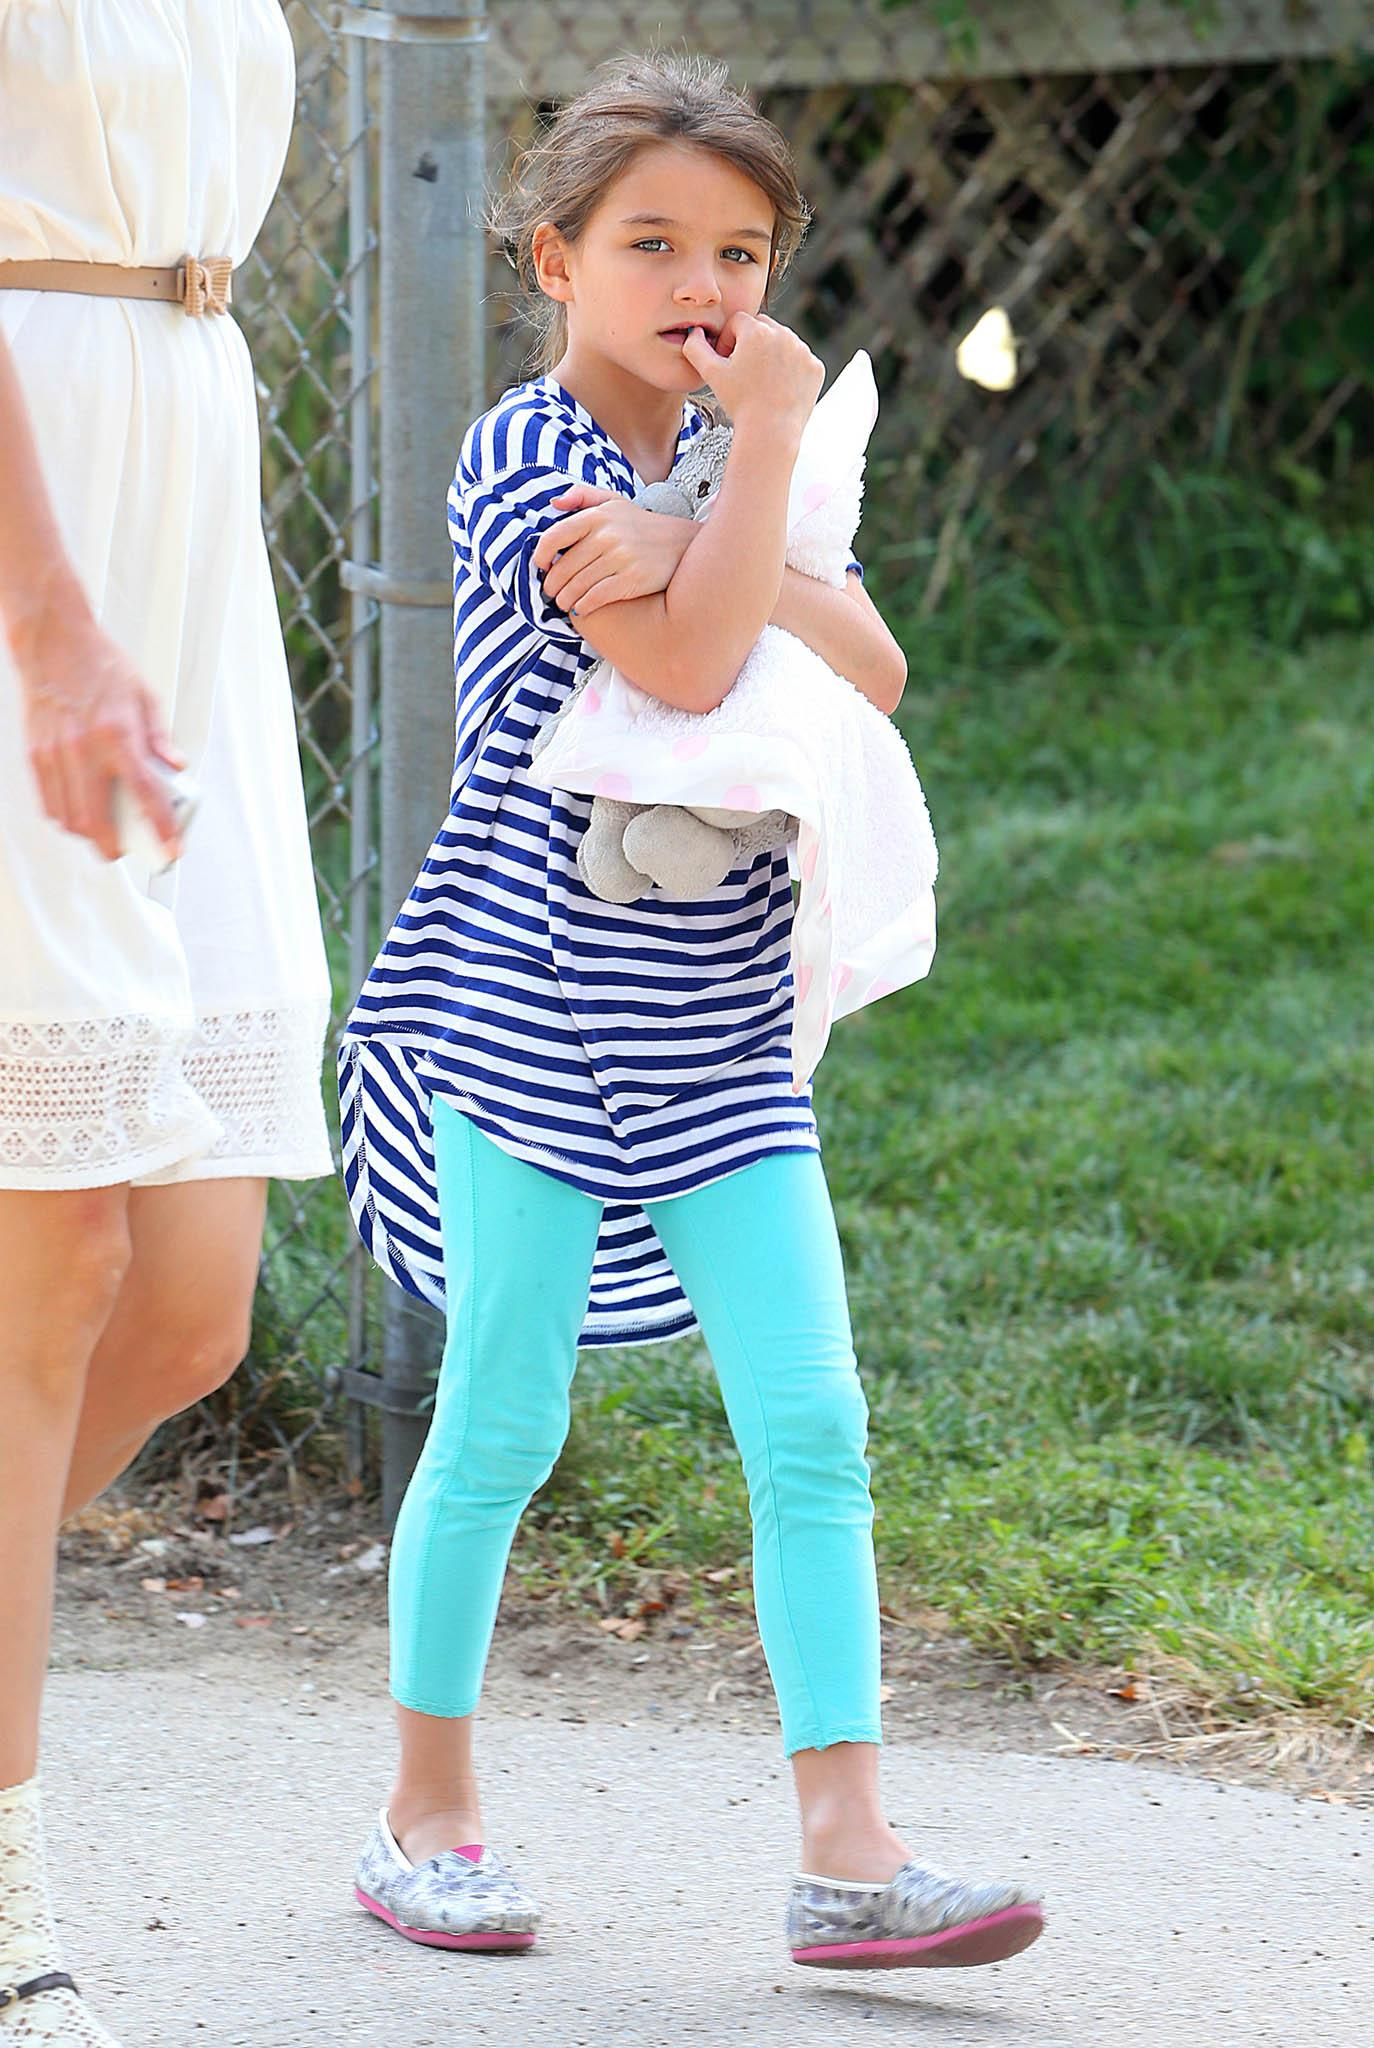 Suri Cruise Will Soon Have a New Accessory Tom Cruise Injury